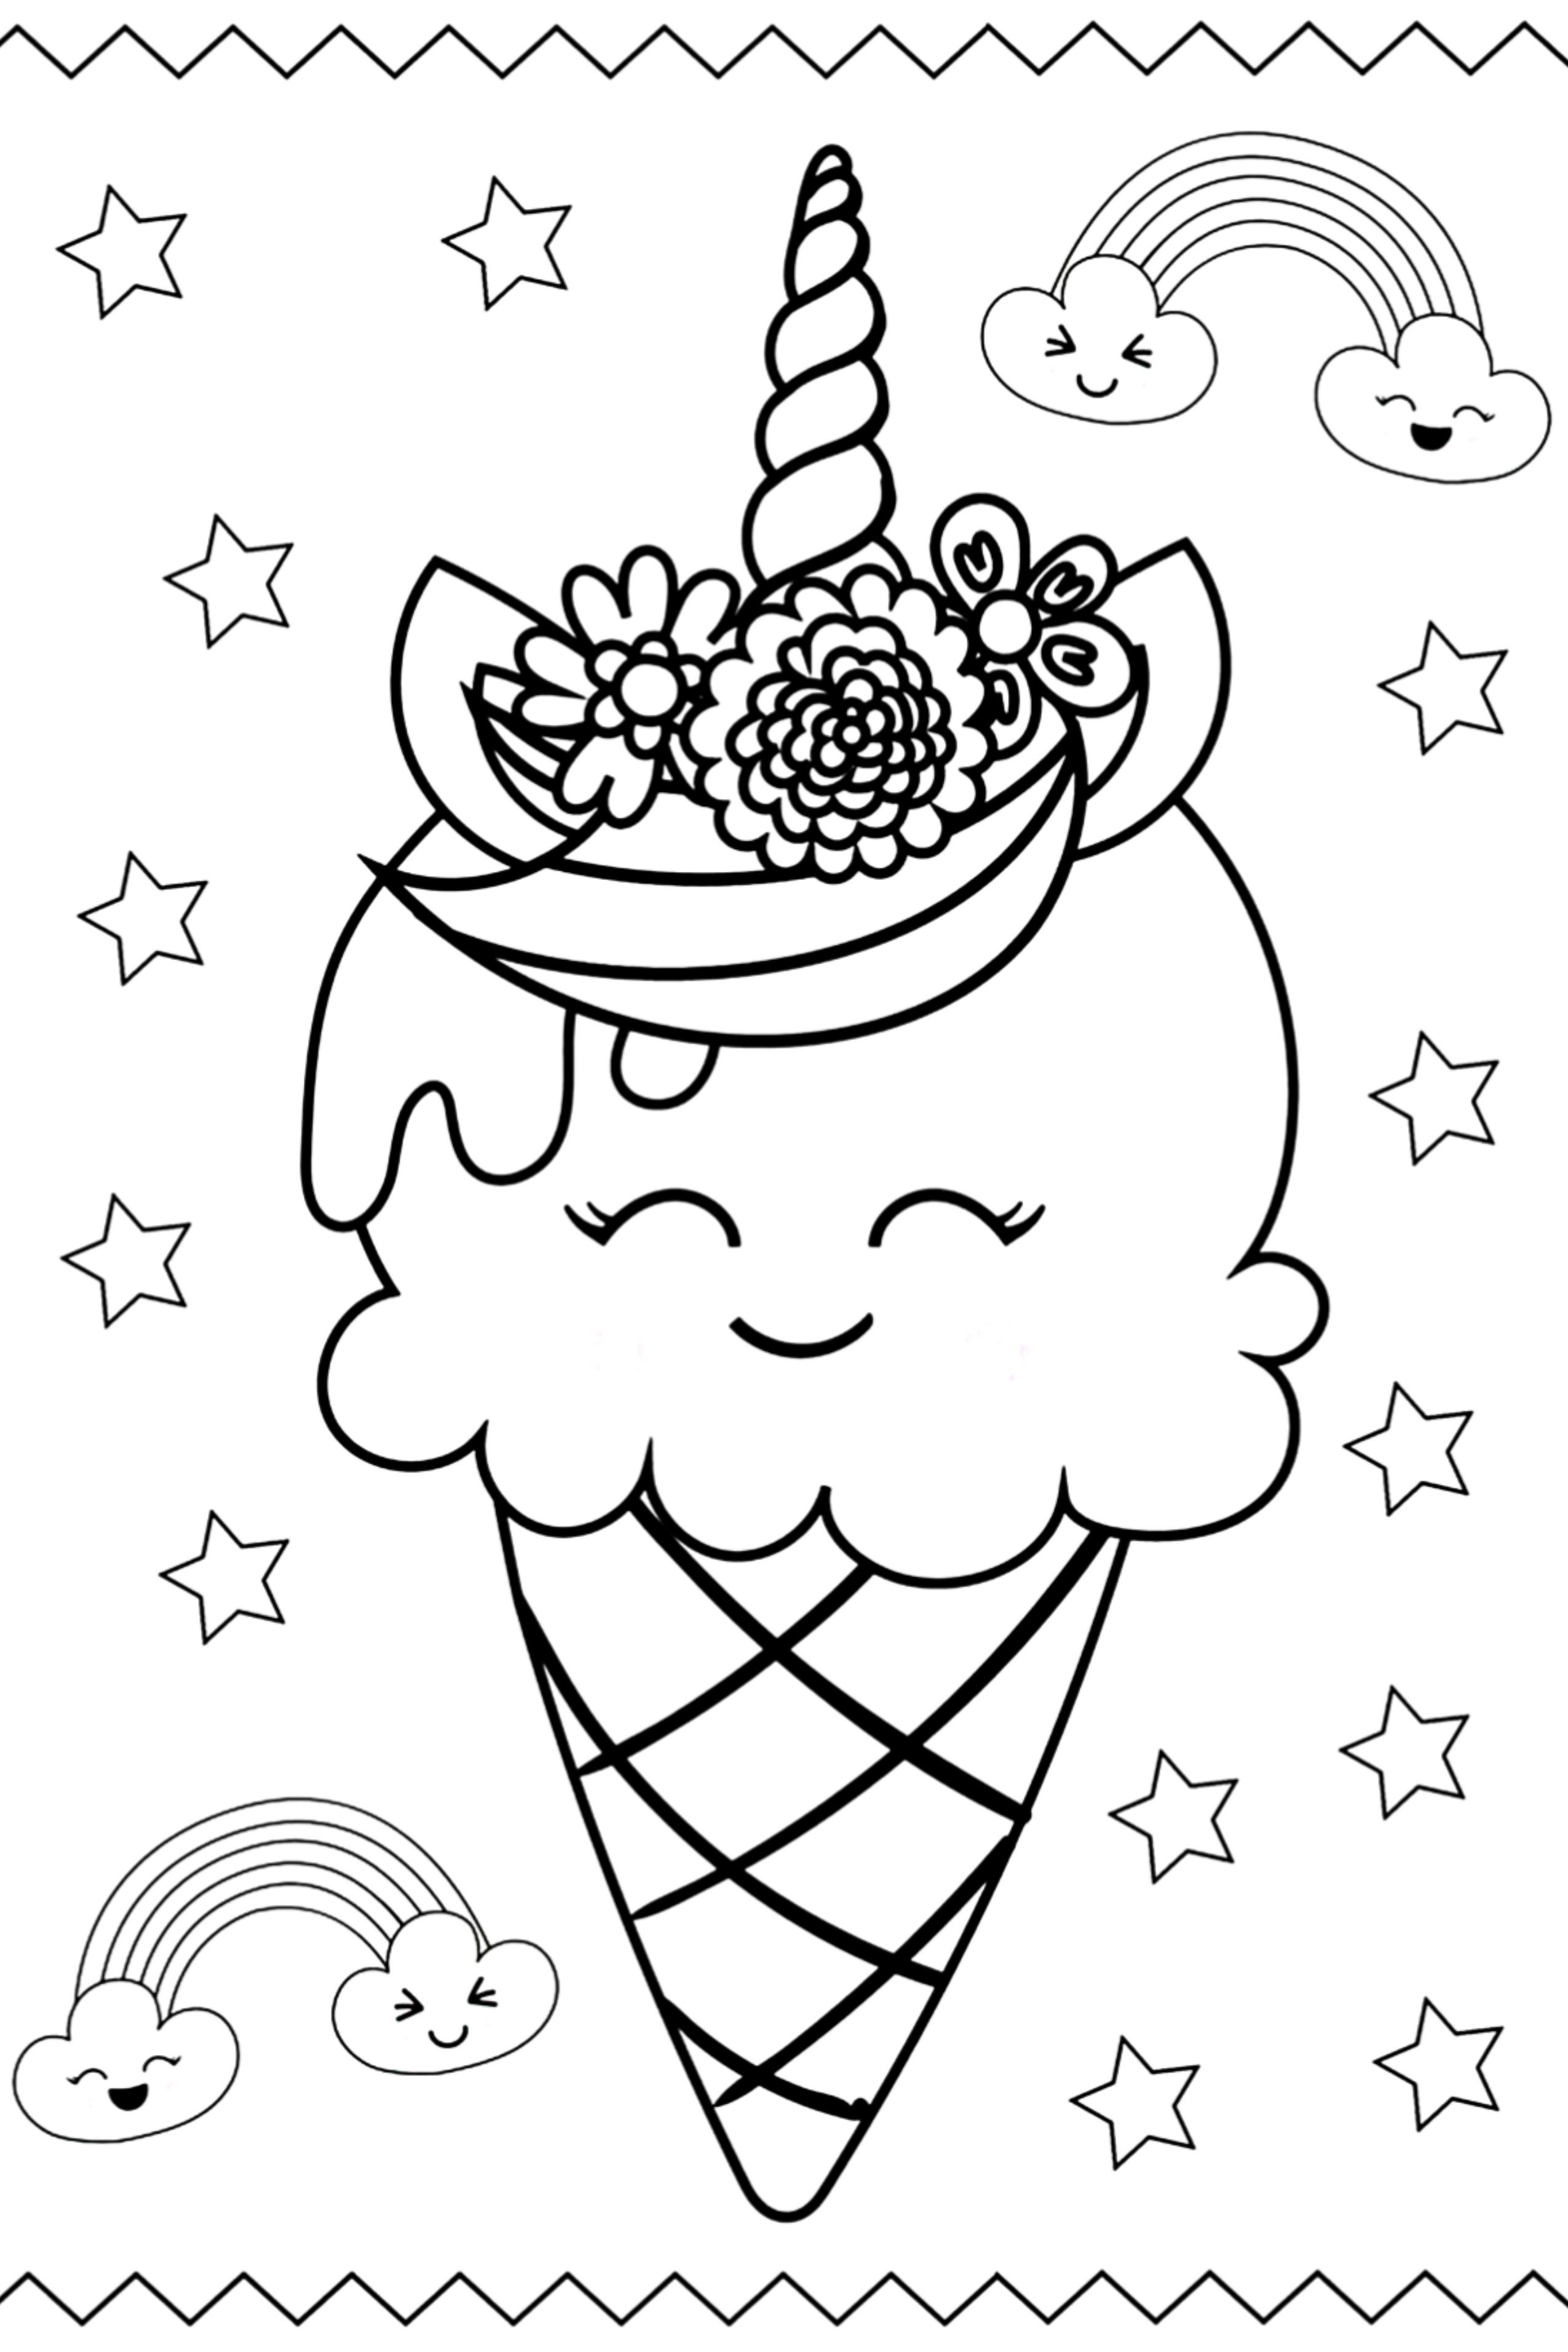 Print Cute Unicorn Ice Cream Kawaii Coloring Pages Unicorn Coloring Pages Coloring Pages Ice Cream Coloring Pages